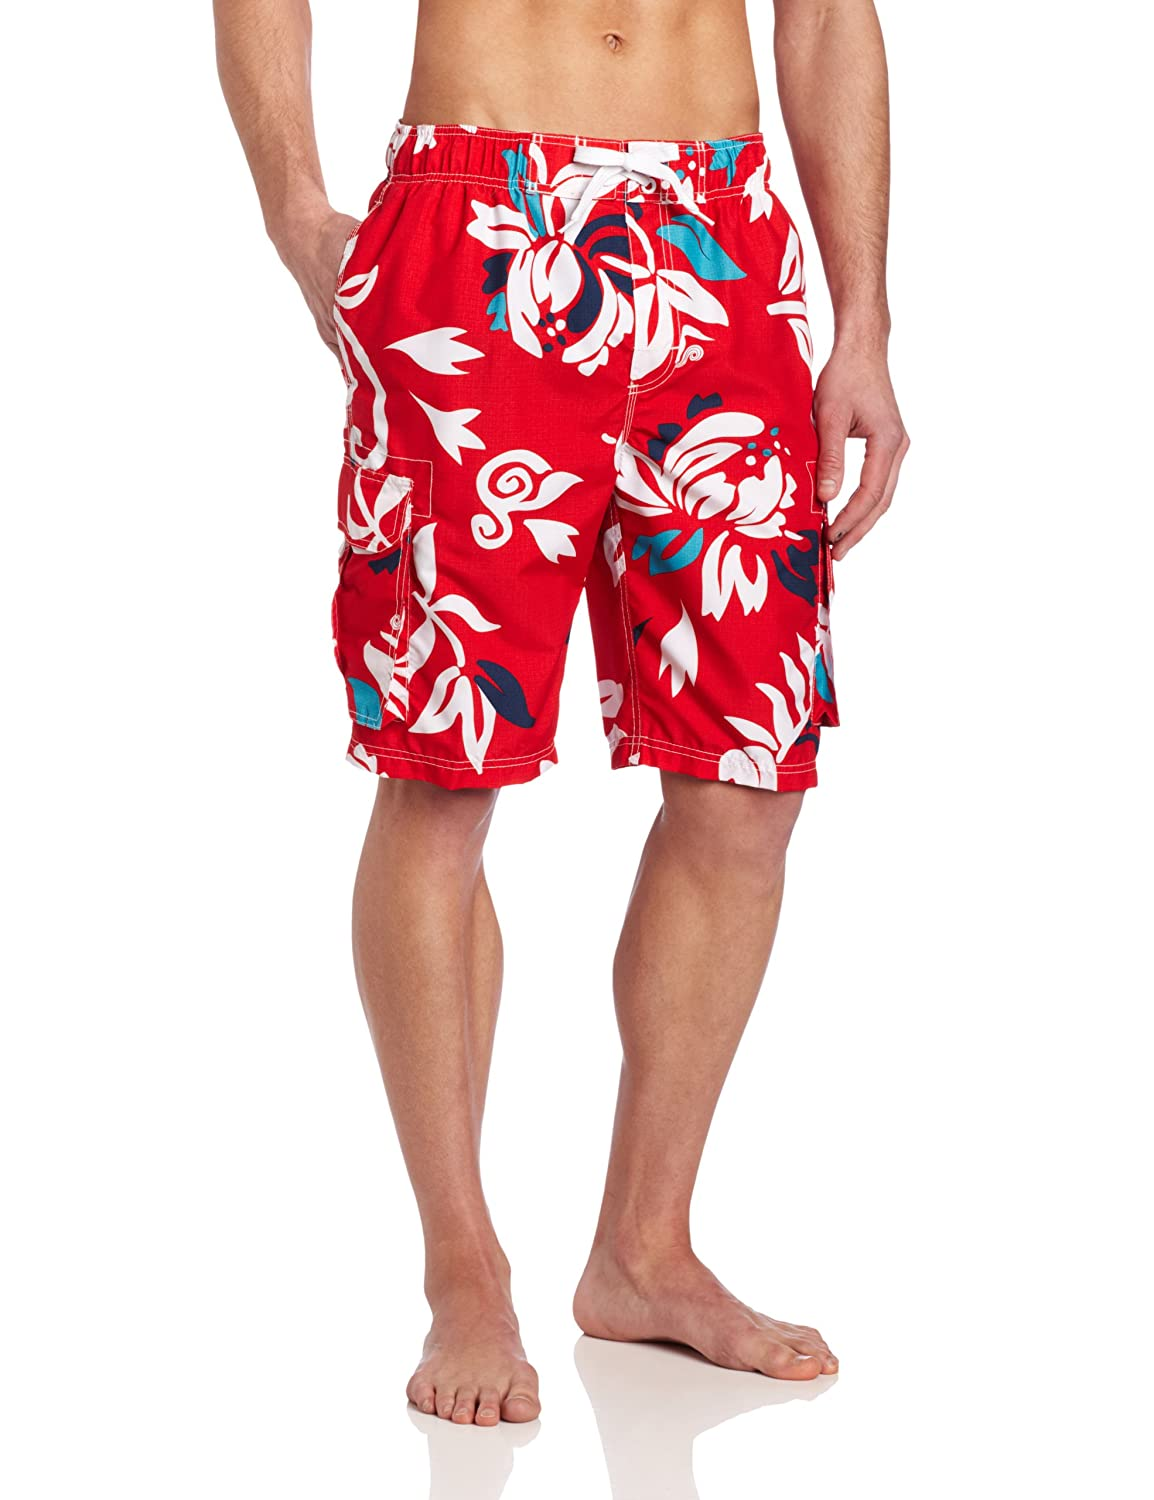 Kanu Surf Men's Oahu Swim Trunk Kanu Surf Men's Swimwear 9064